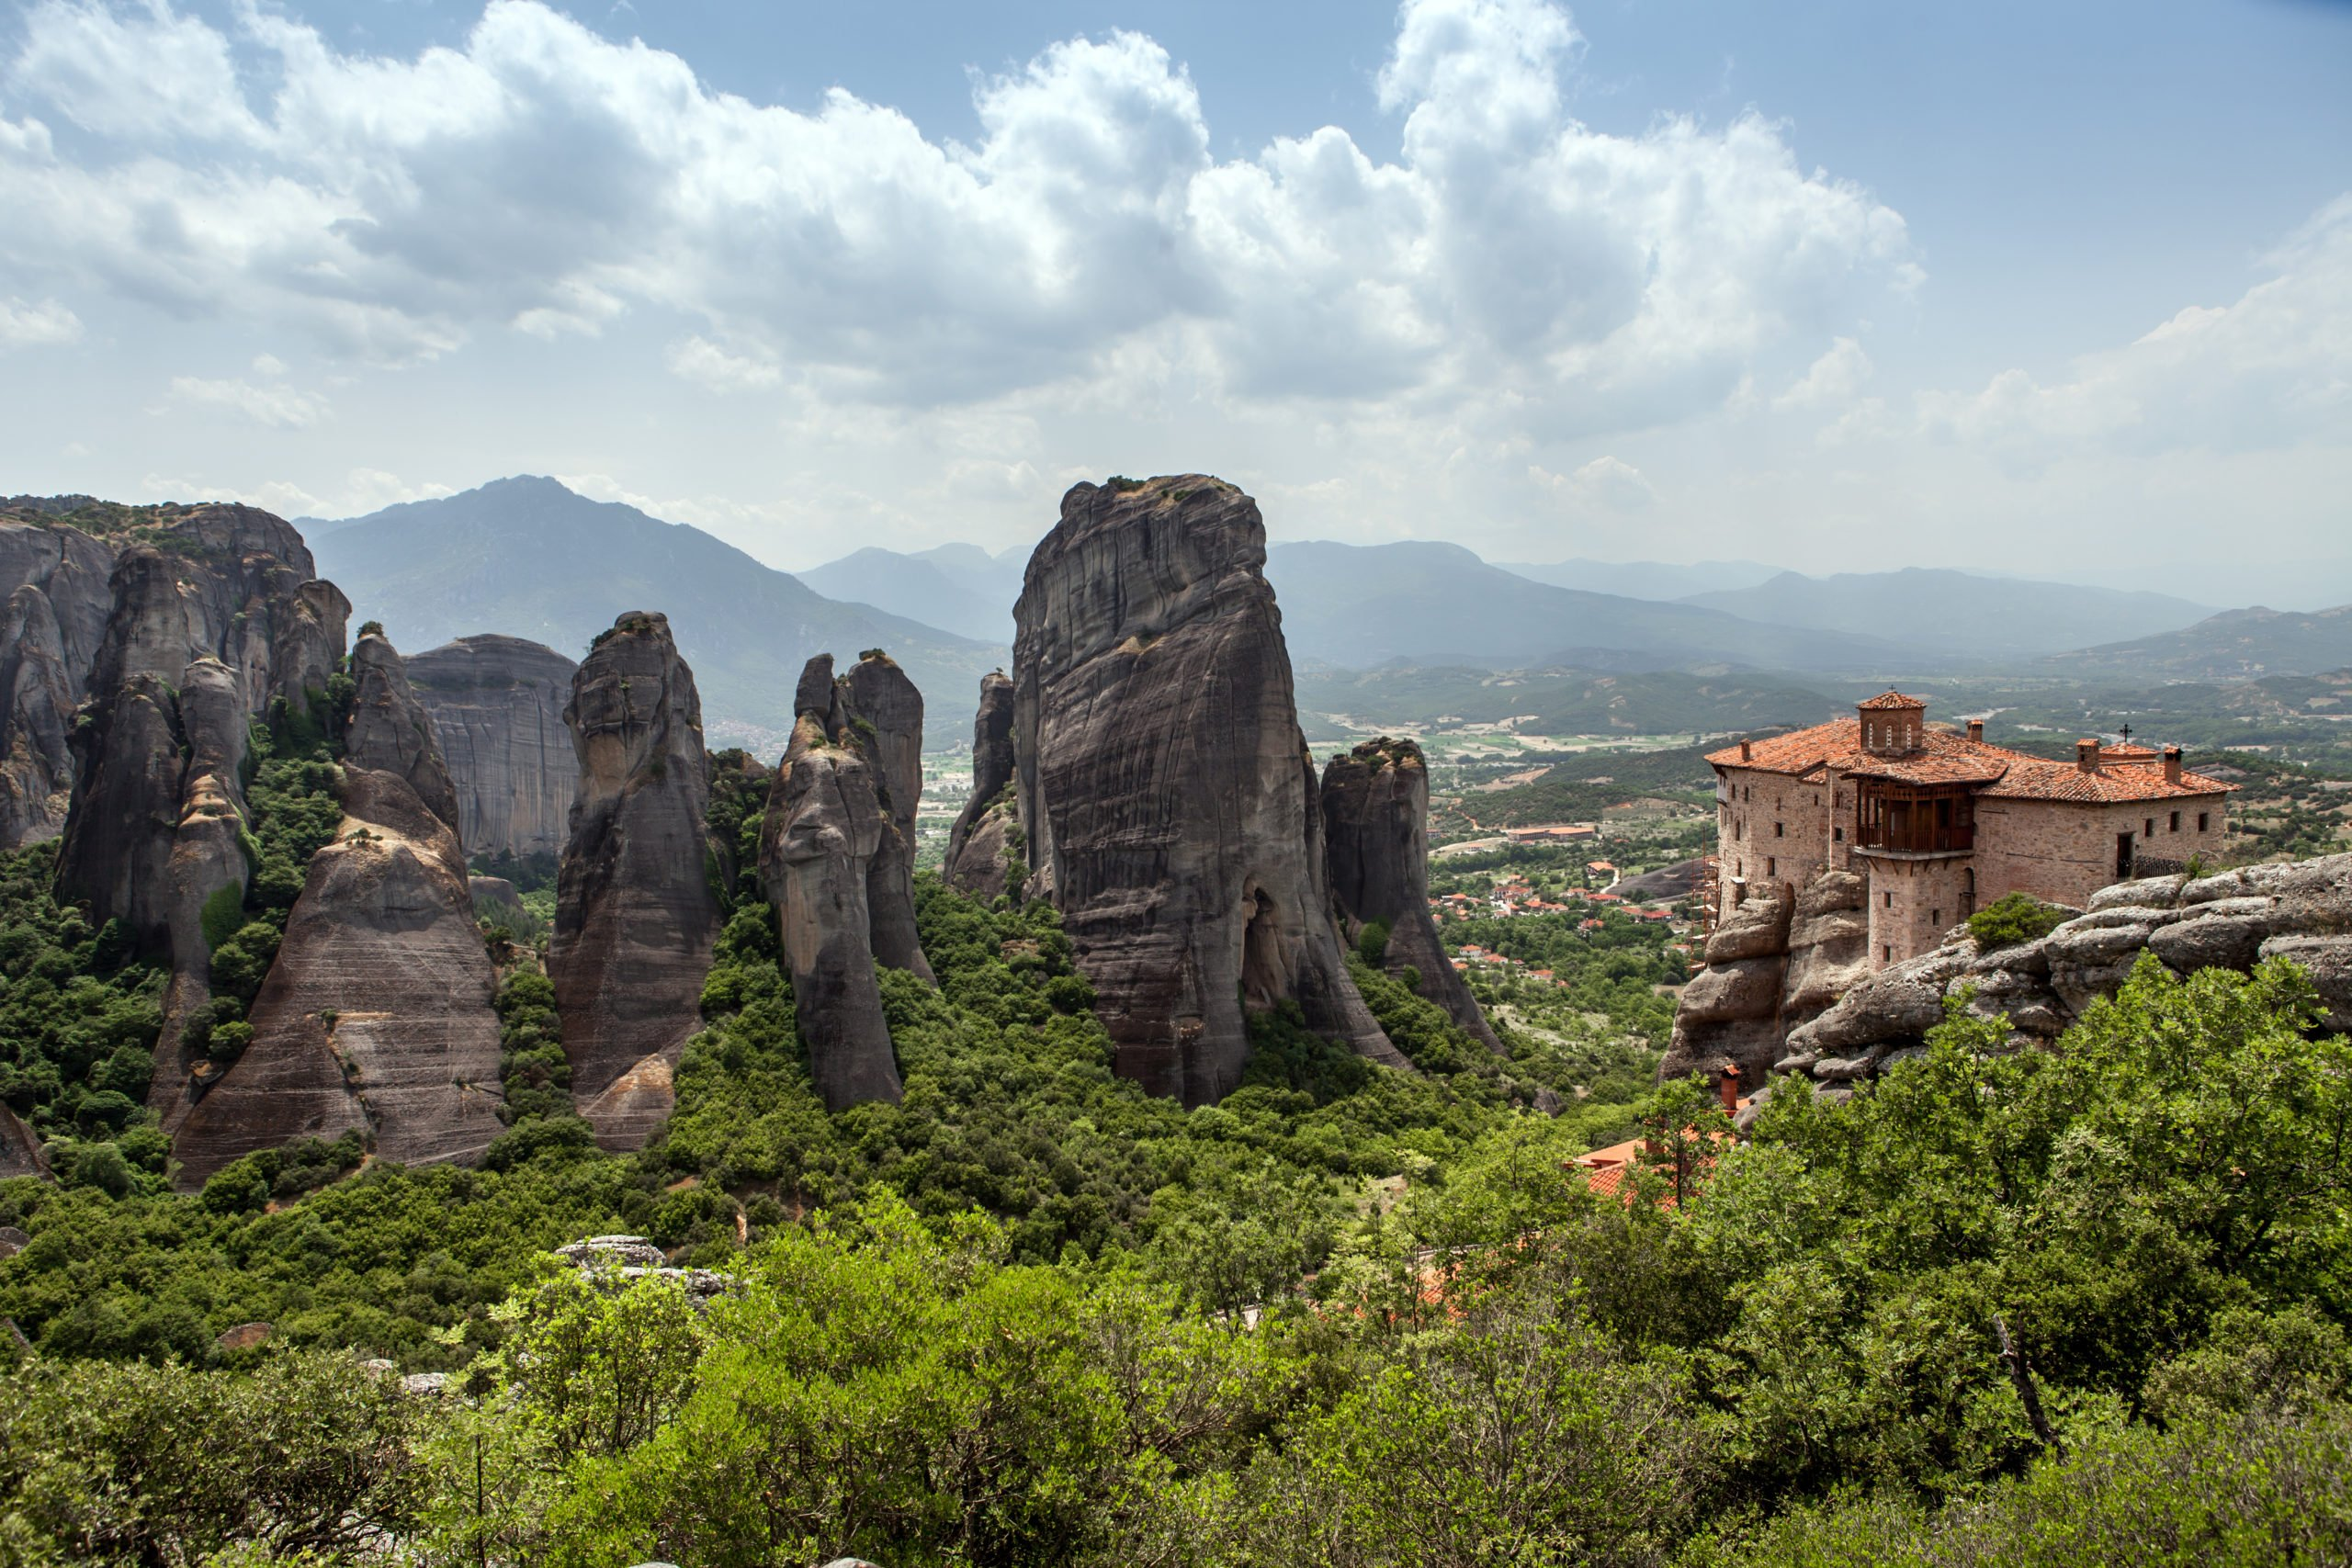 Admire The Astonishing Views Over The Bizzare Looking Rock Formations On The 3 Days In The Footsteps Of The Meteora Monks Package Tour From Kalampaka